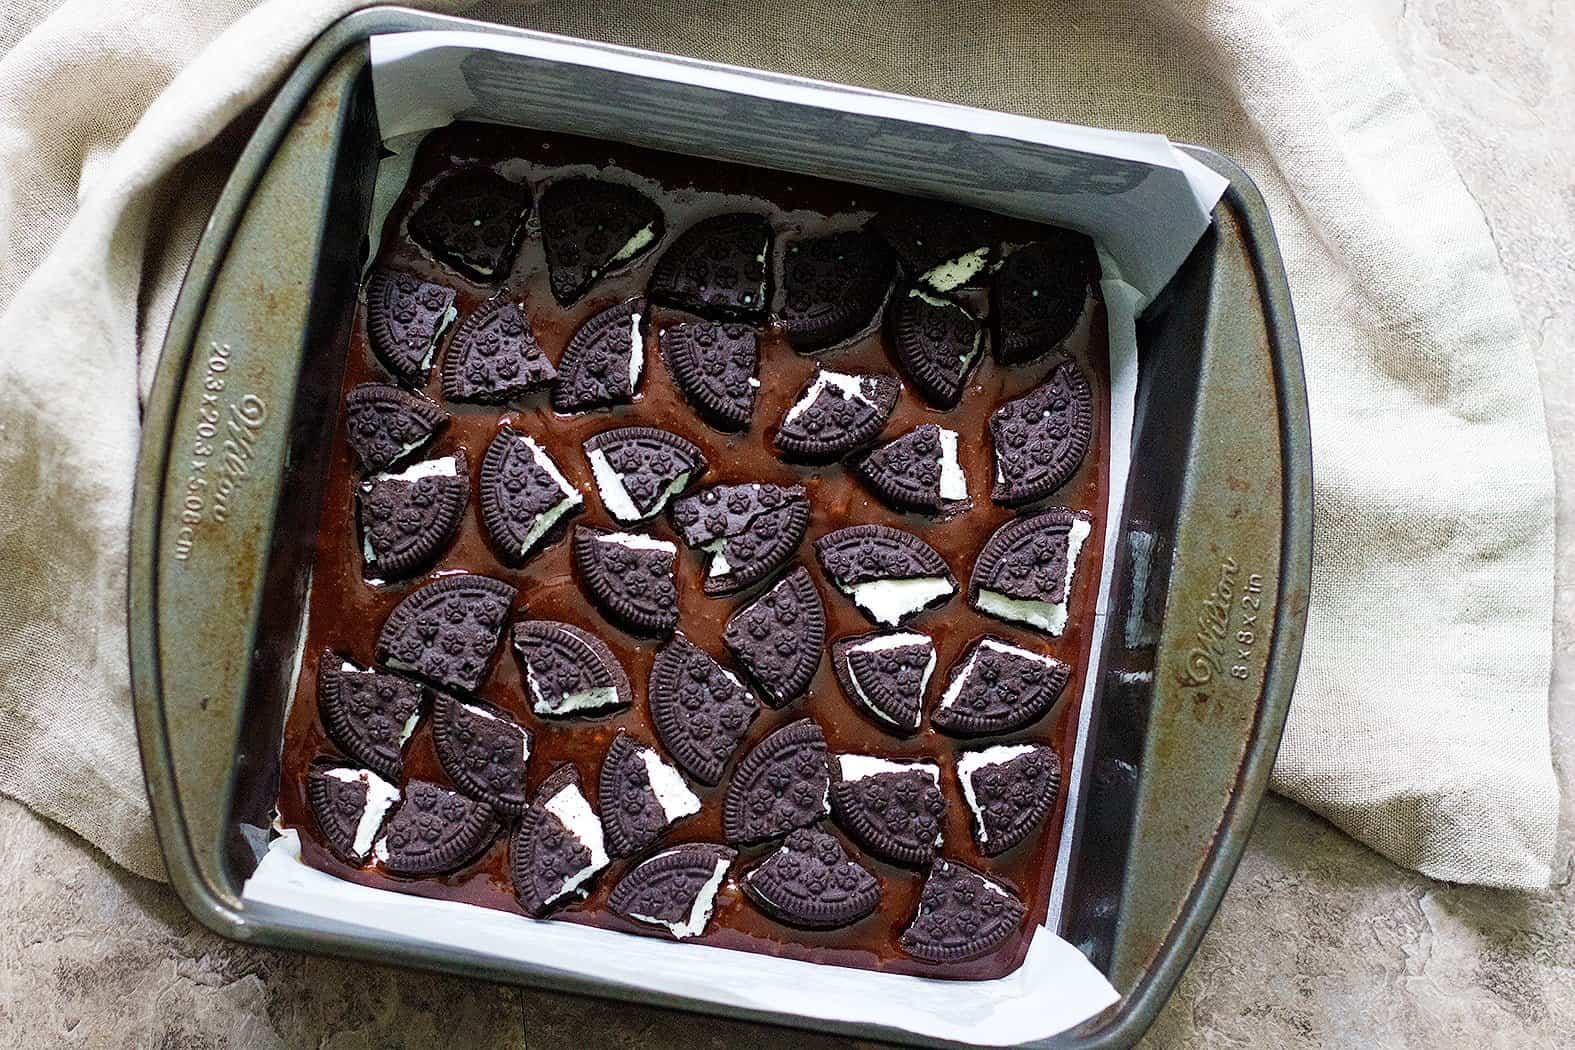 Pour half of the brownie batter into the prepared pan and layer half of the oreo pieces on top.